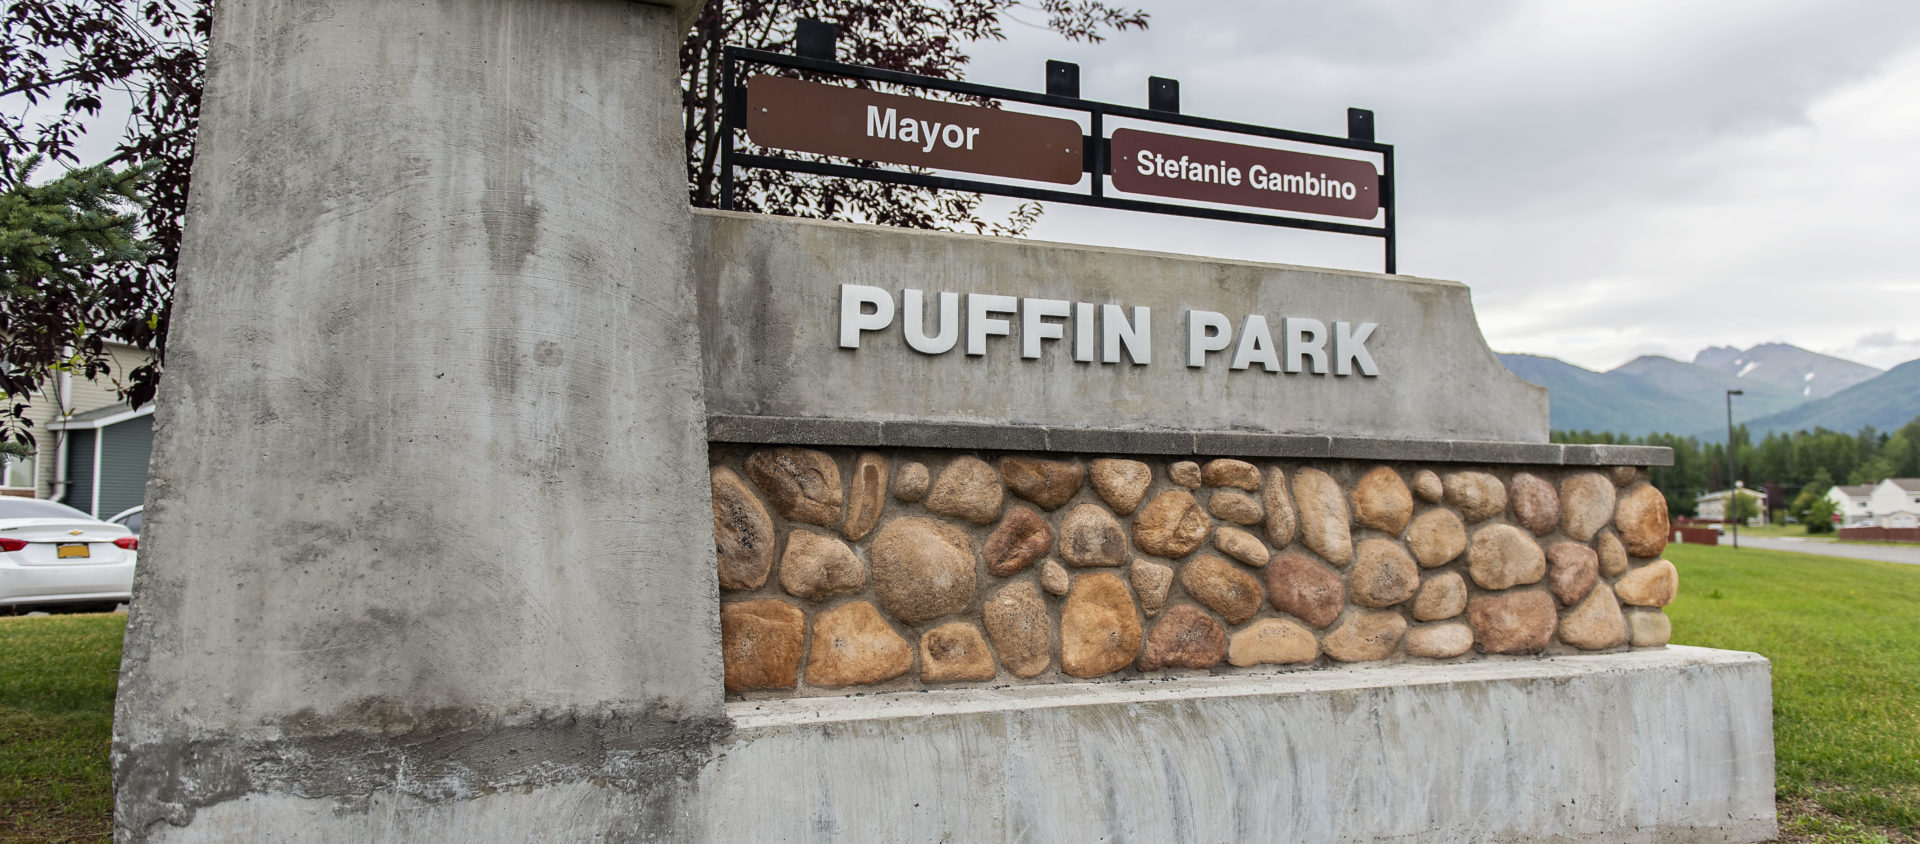 Puffin Park monument sign